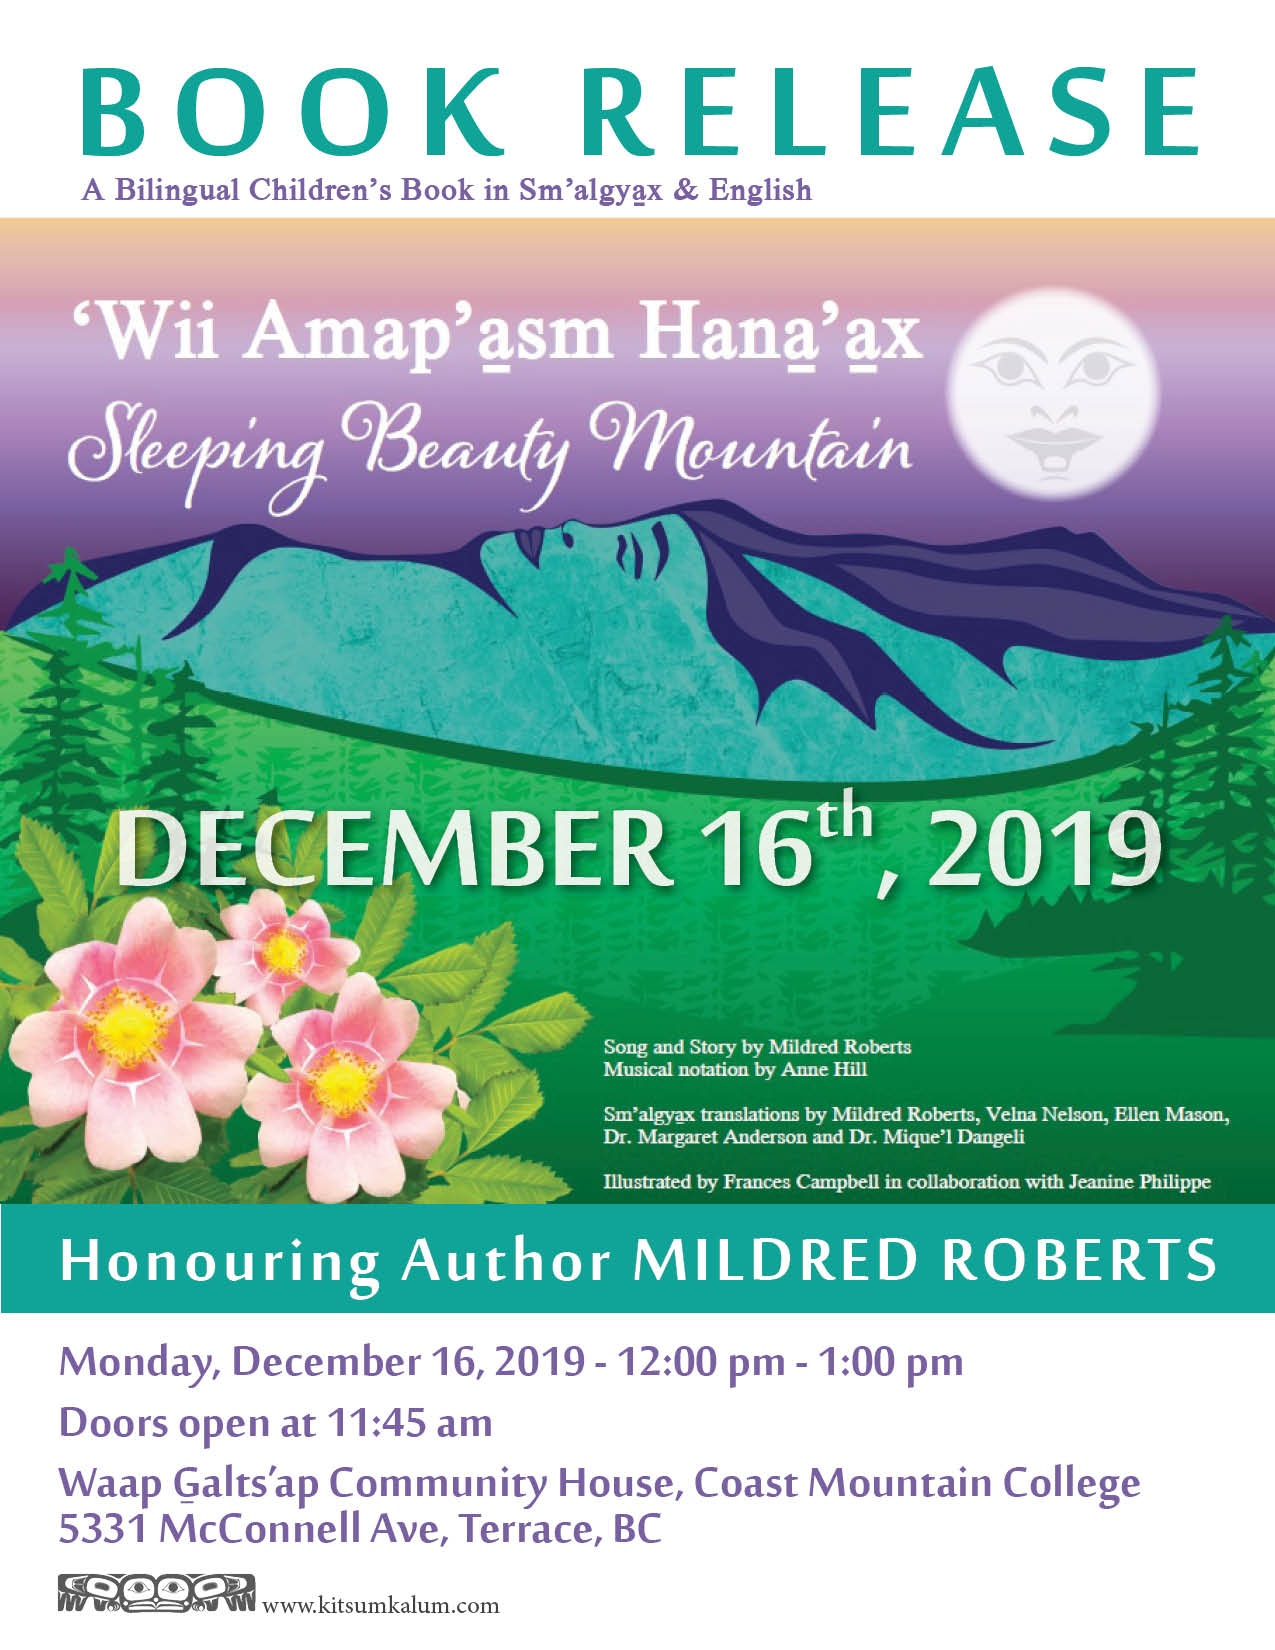 Book Release Honouring Author Mildred Roberts DEC 16